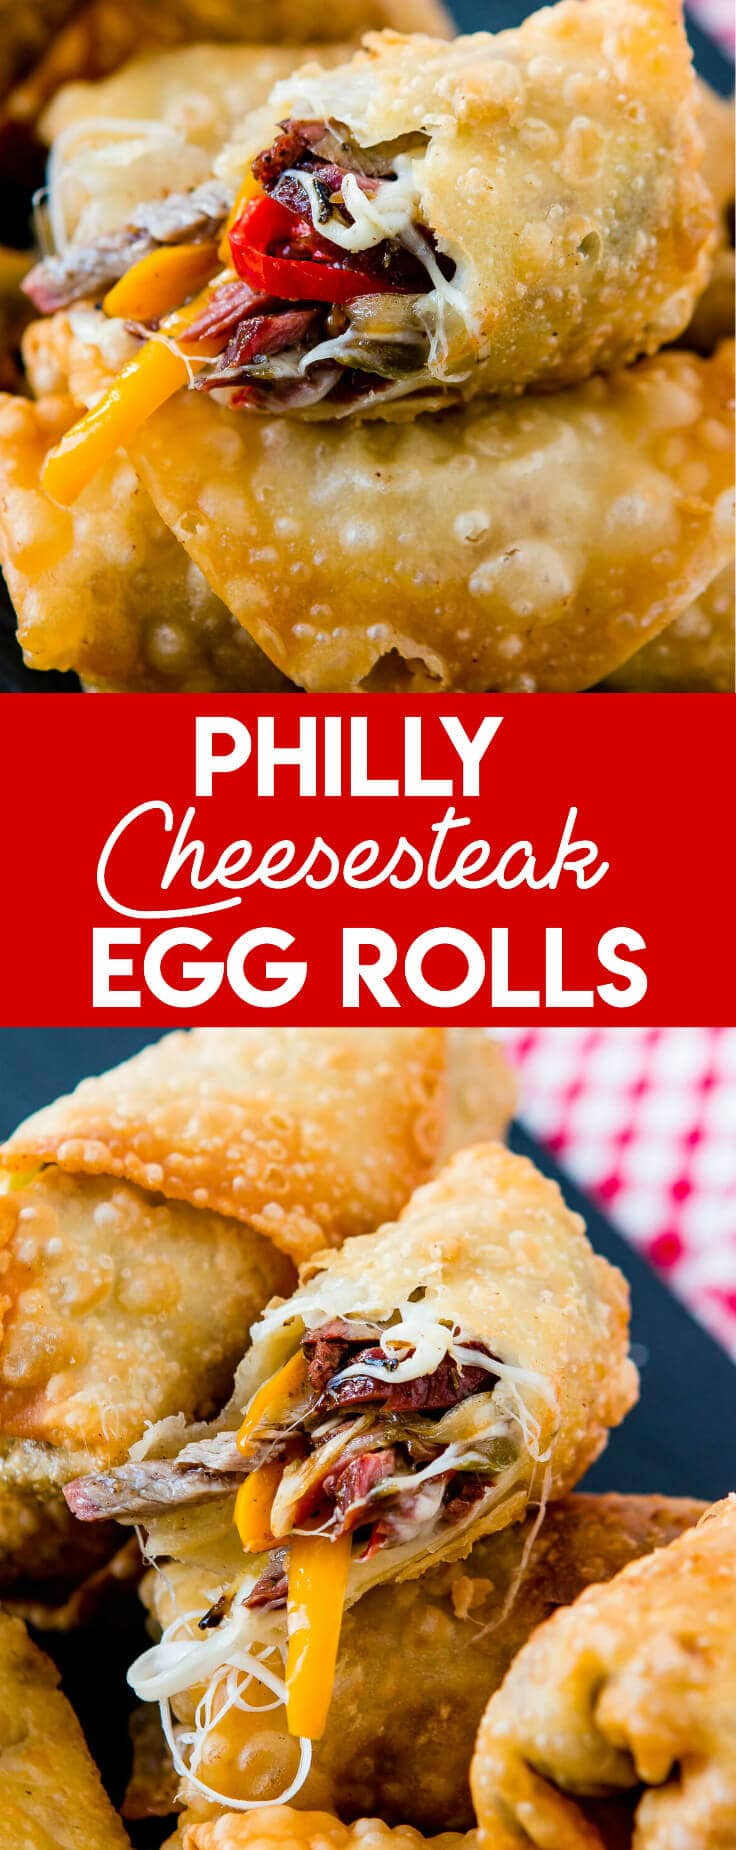 Who wouldn't love a crisp, fried egg roll full of meat and cheese? These Philly Cheesesteak Egg Rolls are perfect for football games and parties!